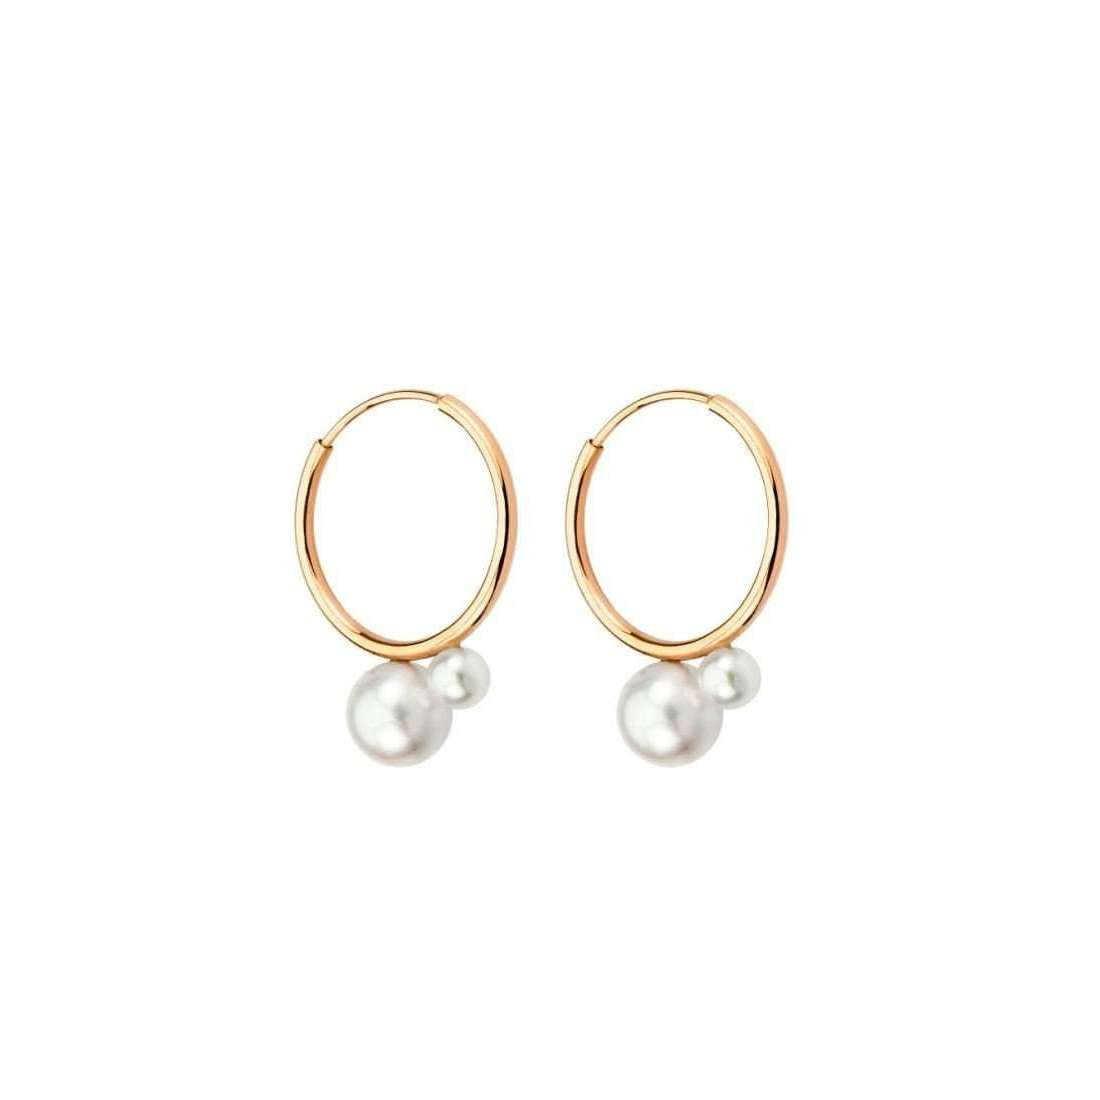 Pure - Yellow Gold Earrings and Akoya Pearls | JewelStreet US